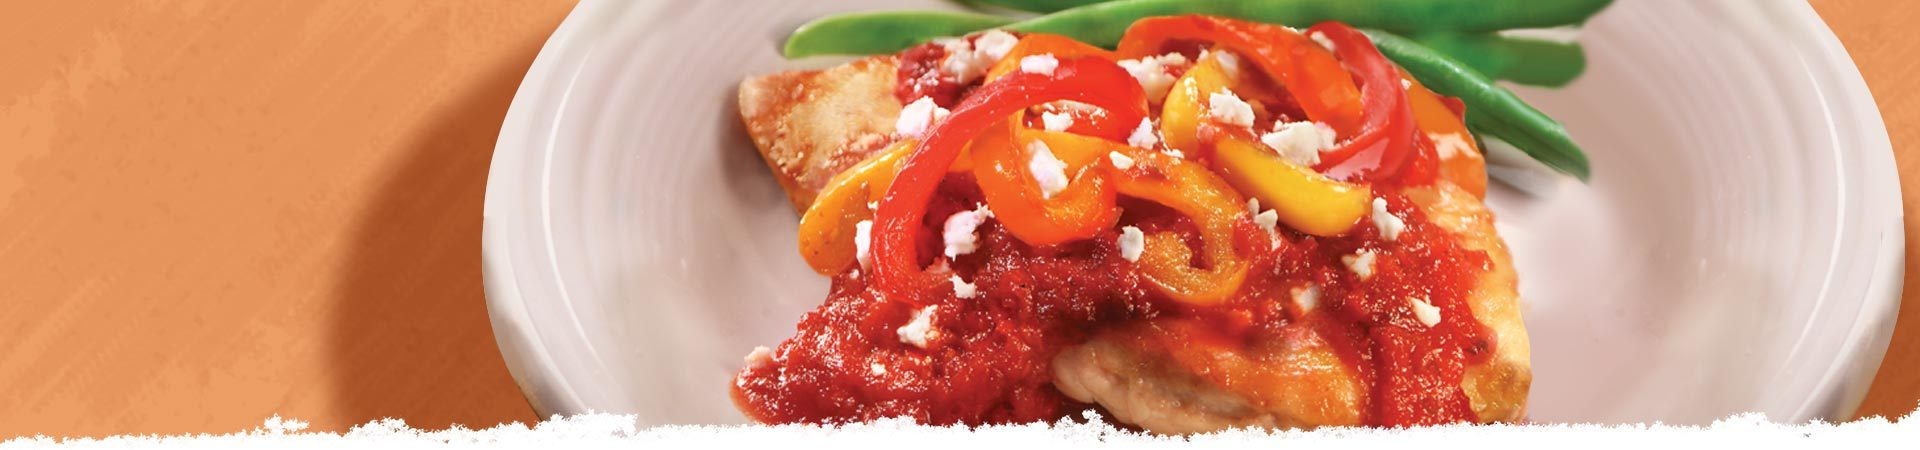 Chicken with Peppers & Goat Cheese